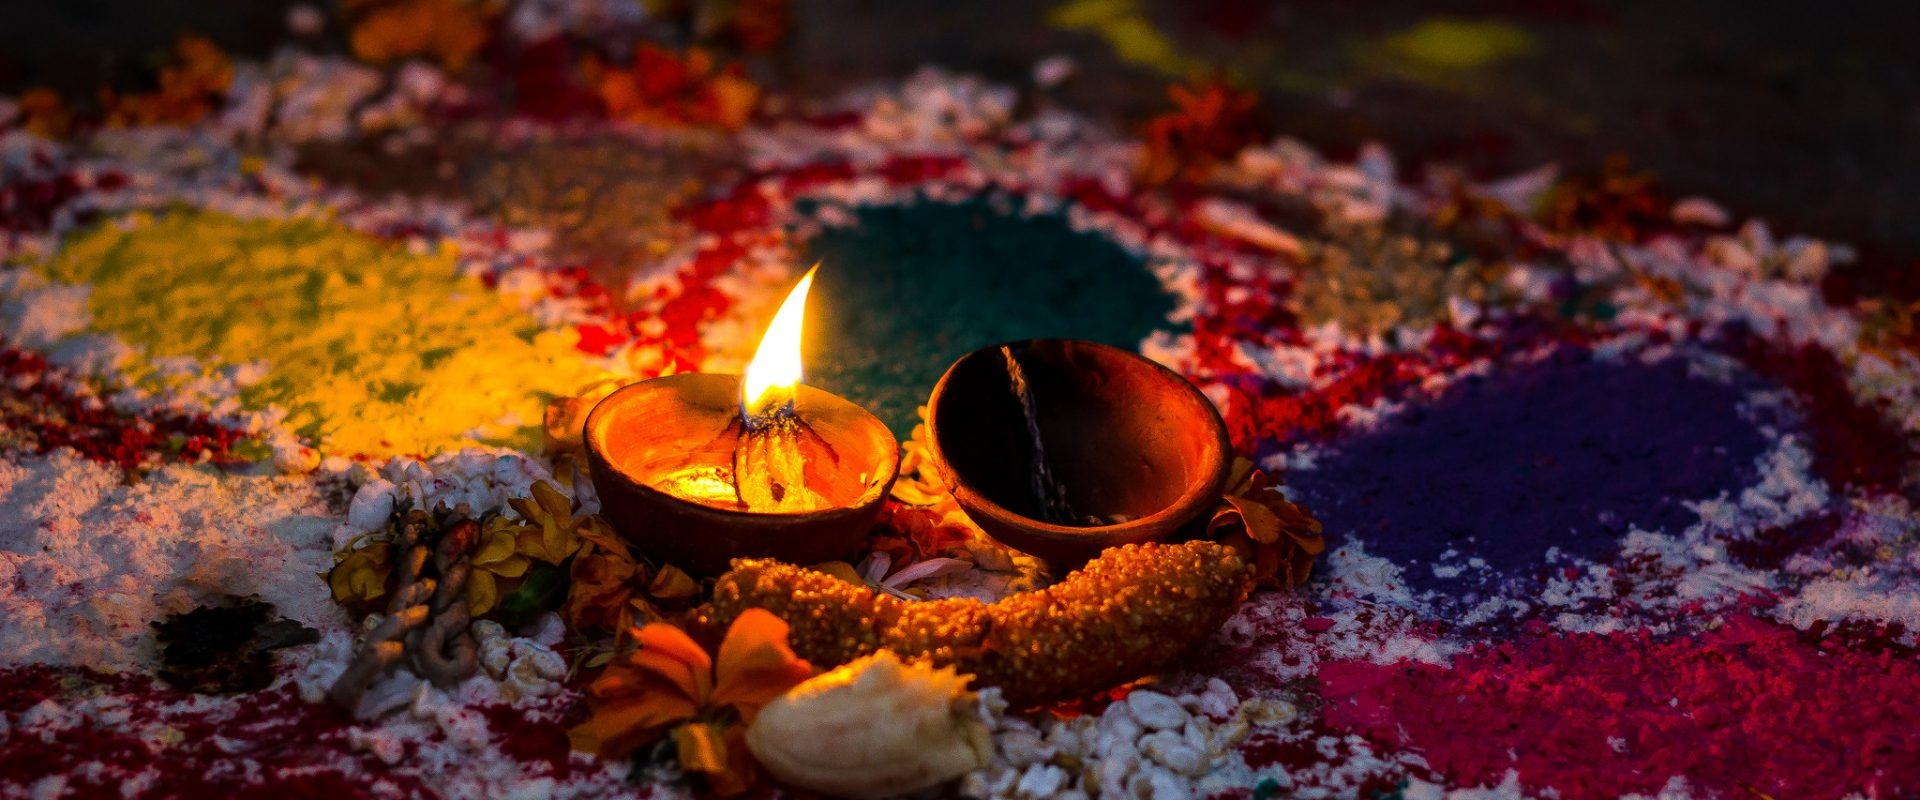 Tihar - the festival of lights & colors!